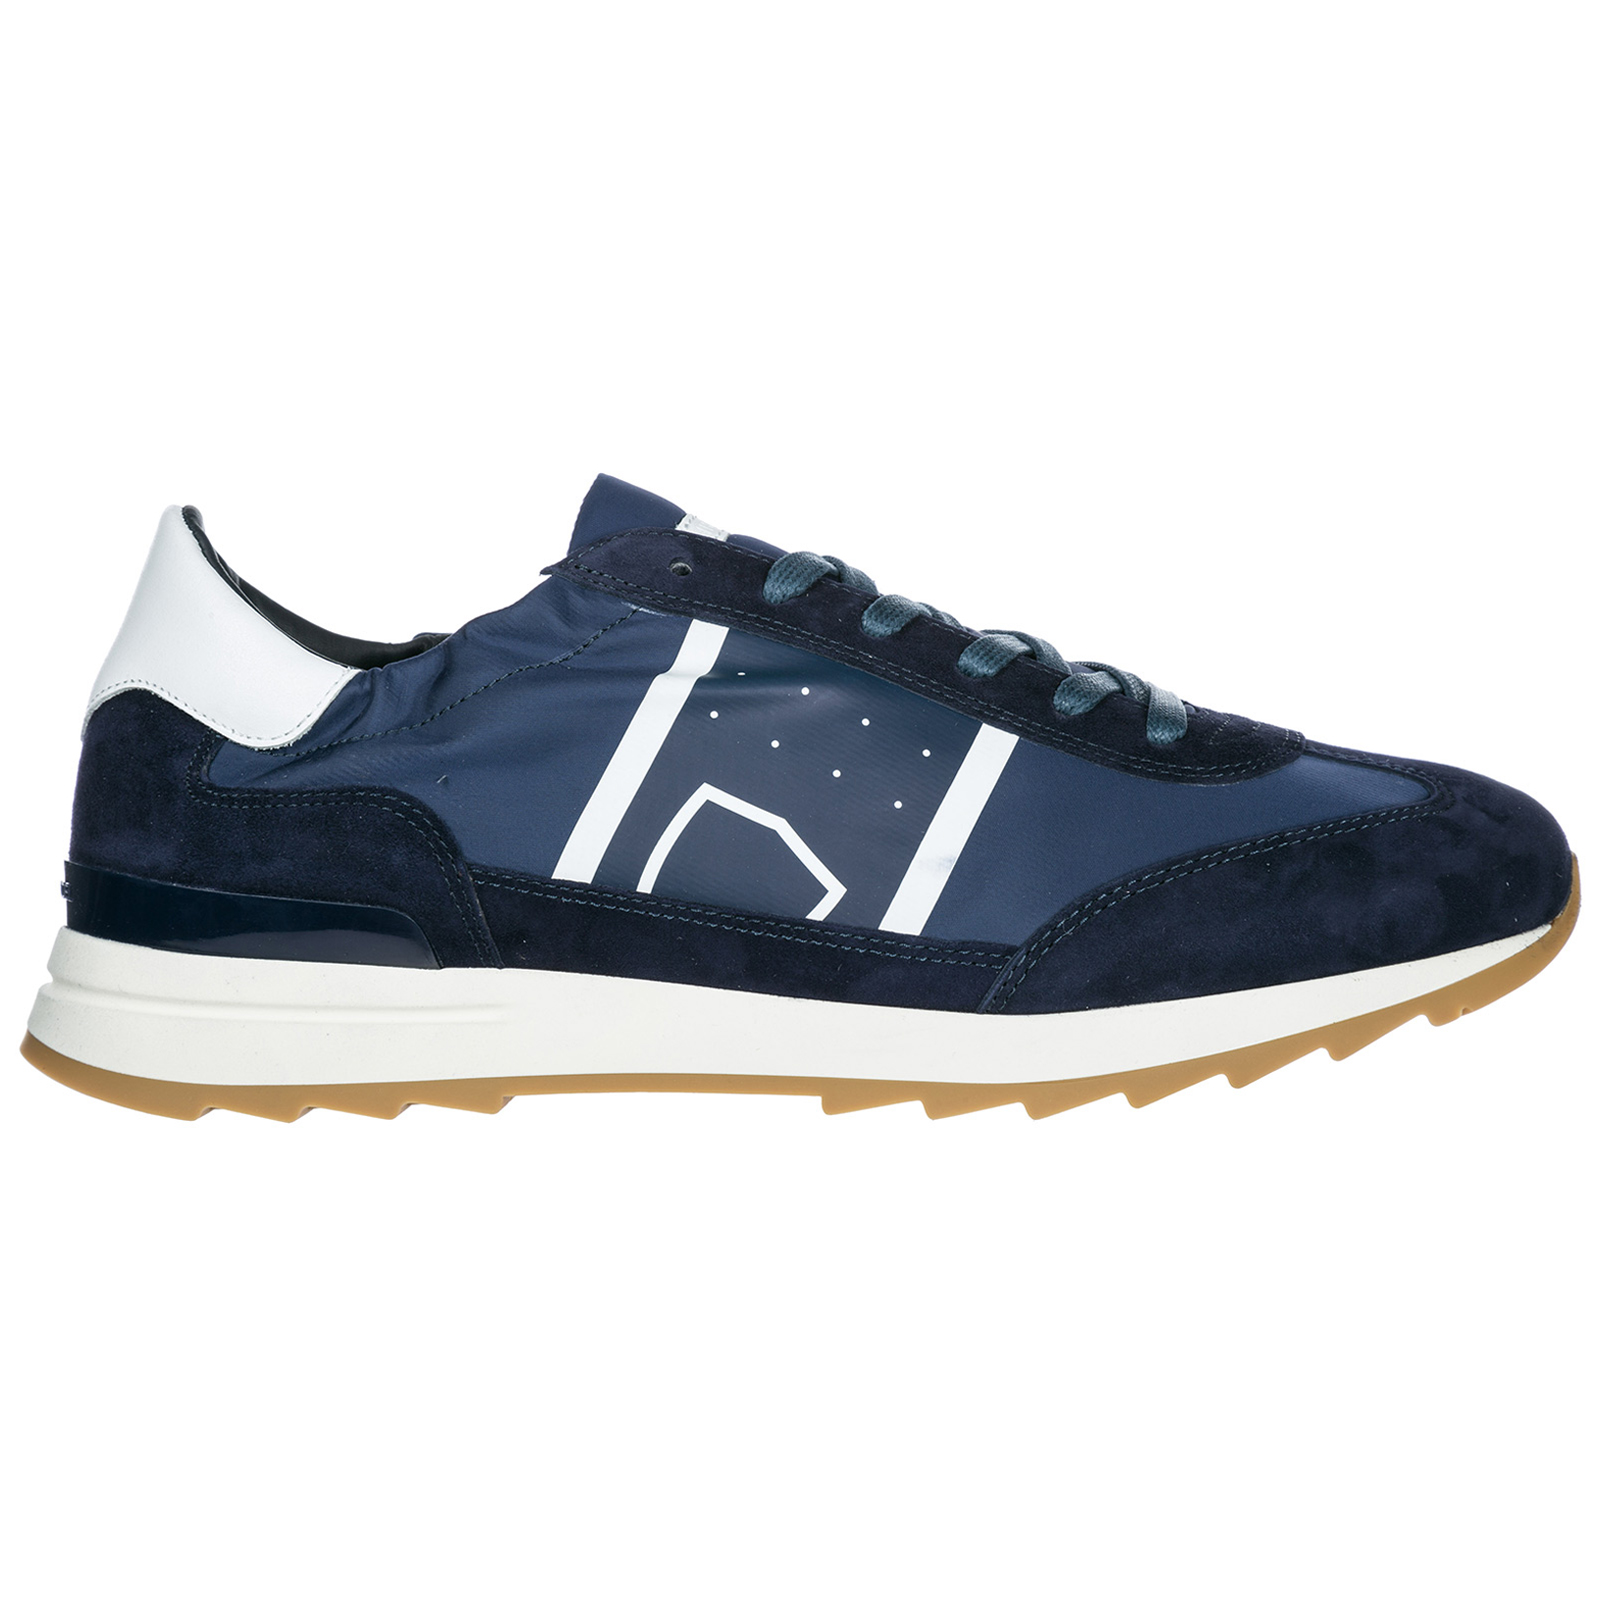 Men's shoes suede trainers sneakers toujours